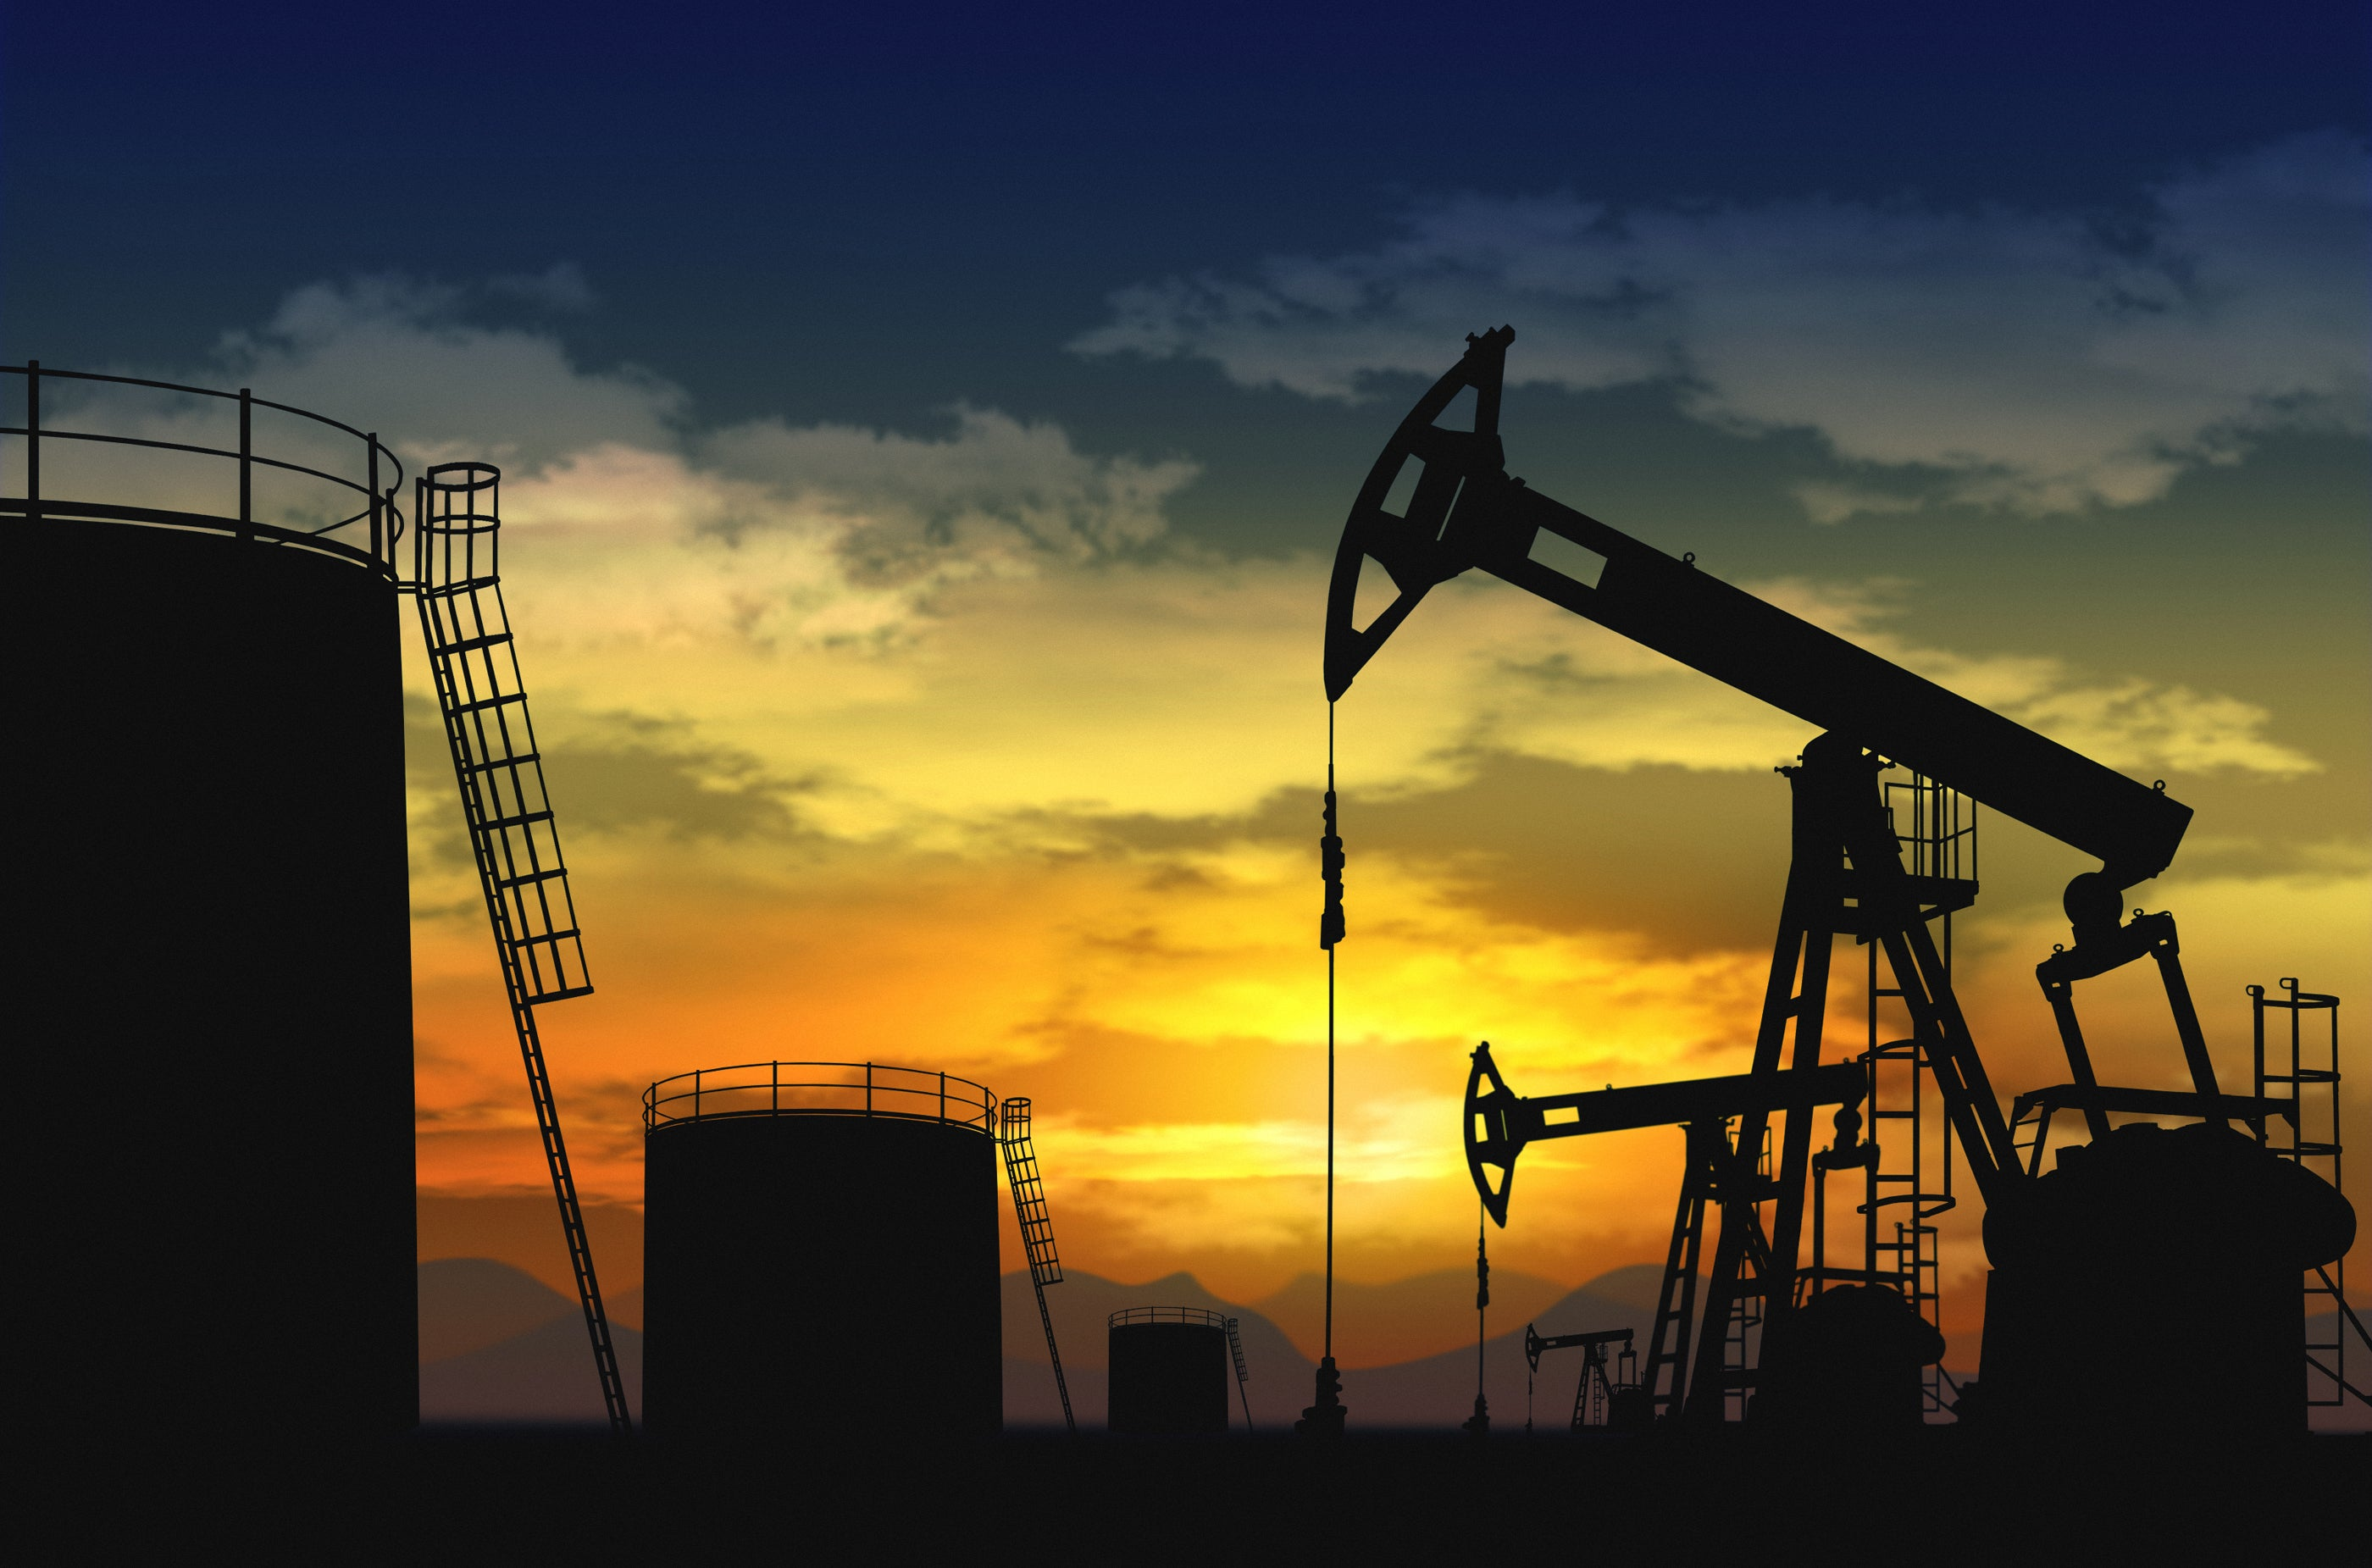 5 Top Oil Stocks to Buy in 2019 | The Motley Fool